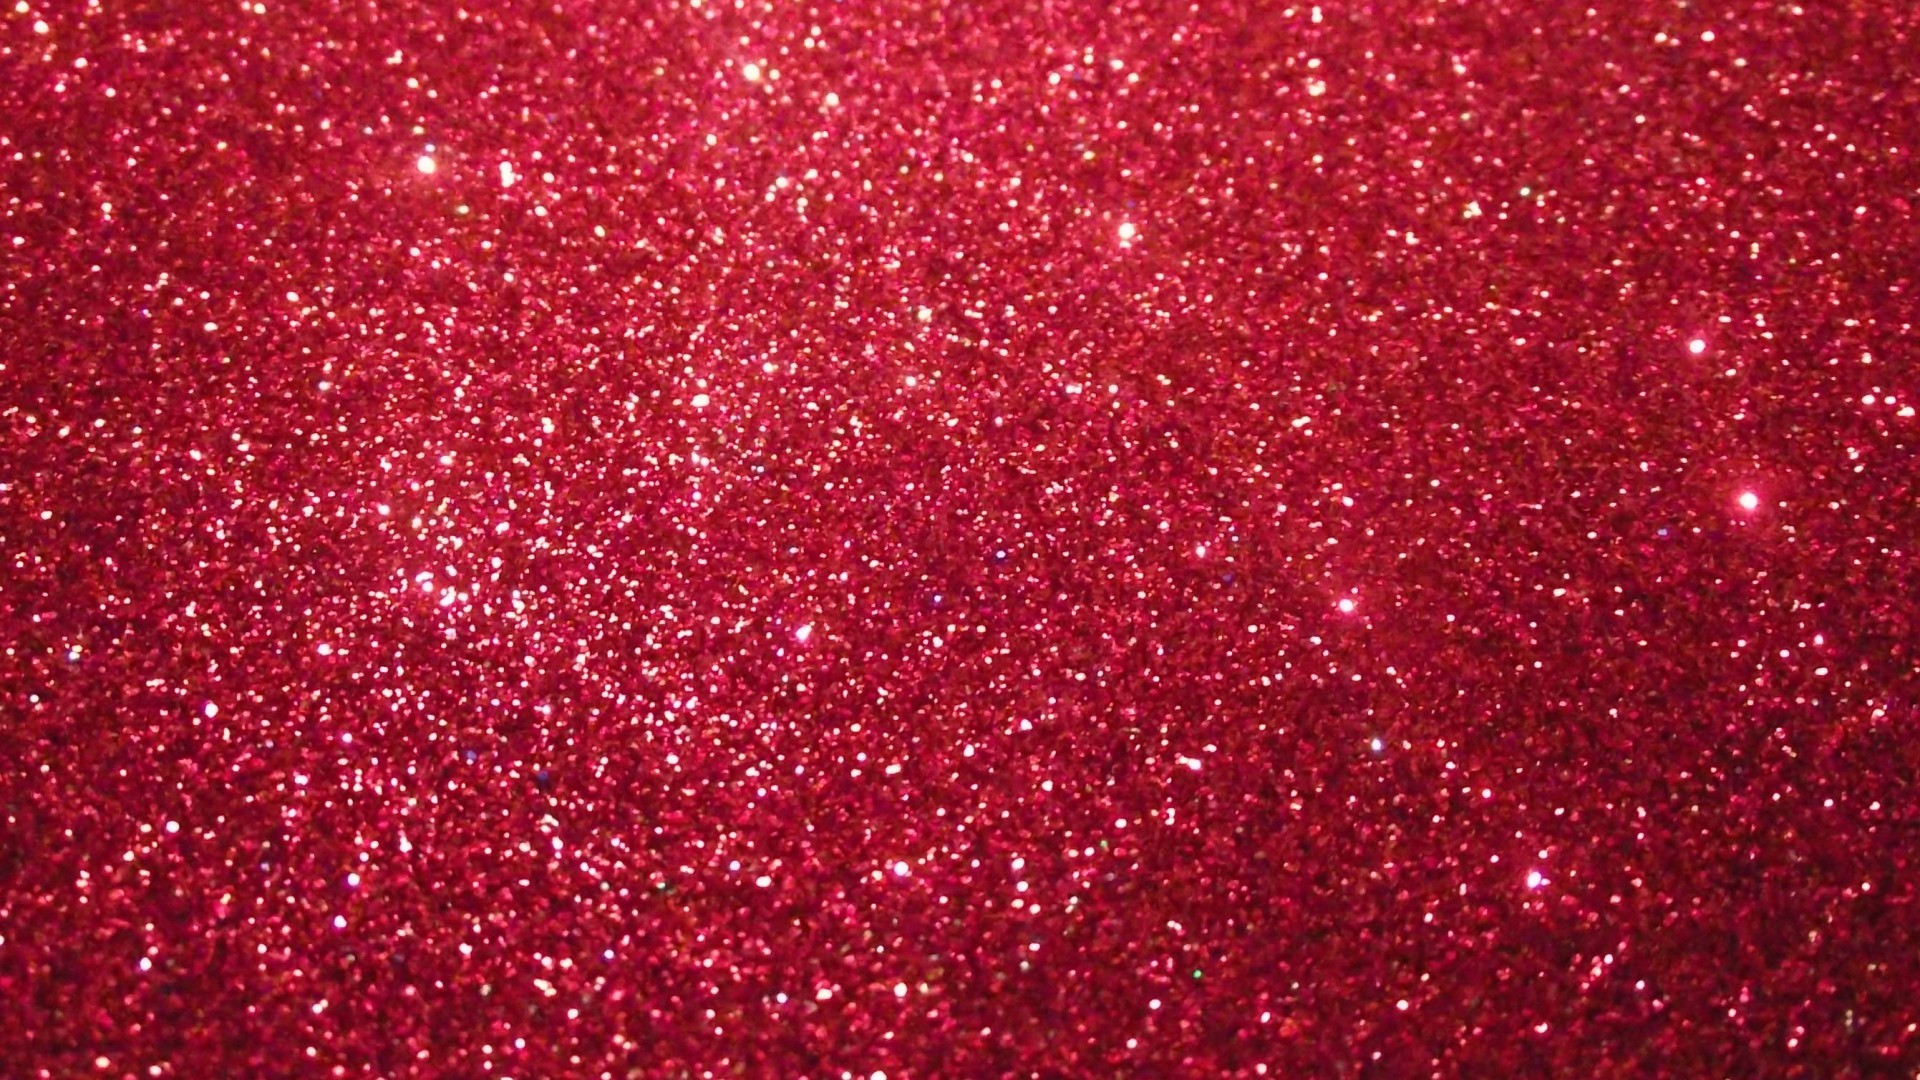 Red Glitter Background Download Free Backgrounds For Desktop